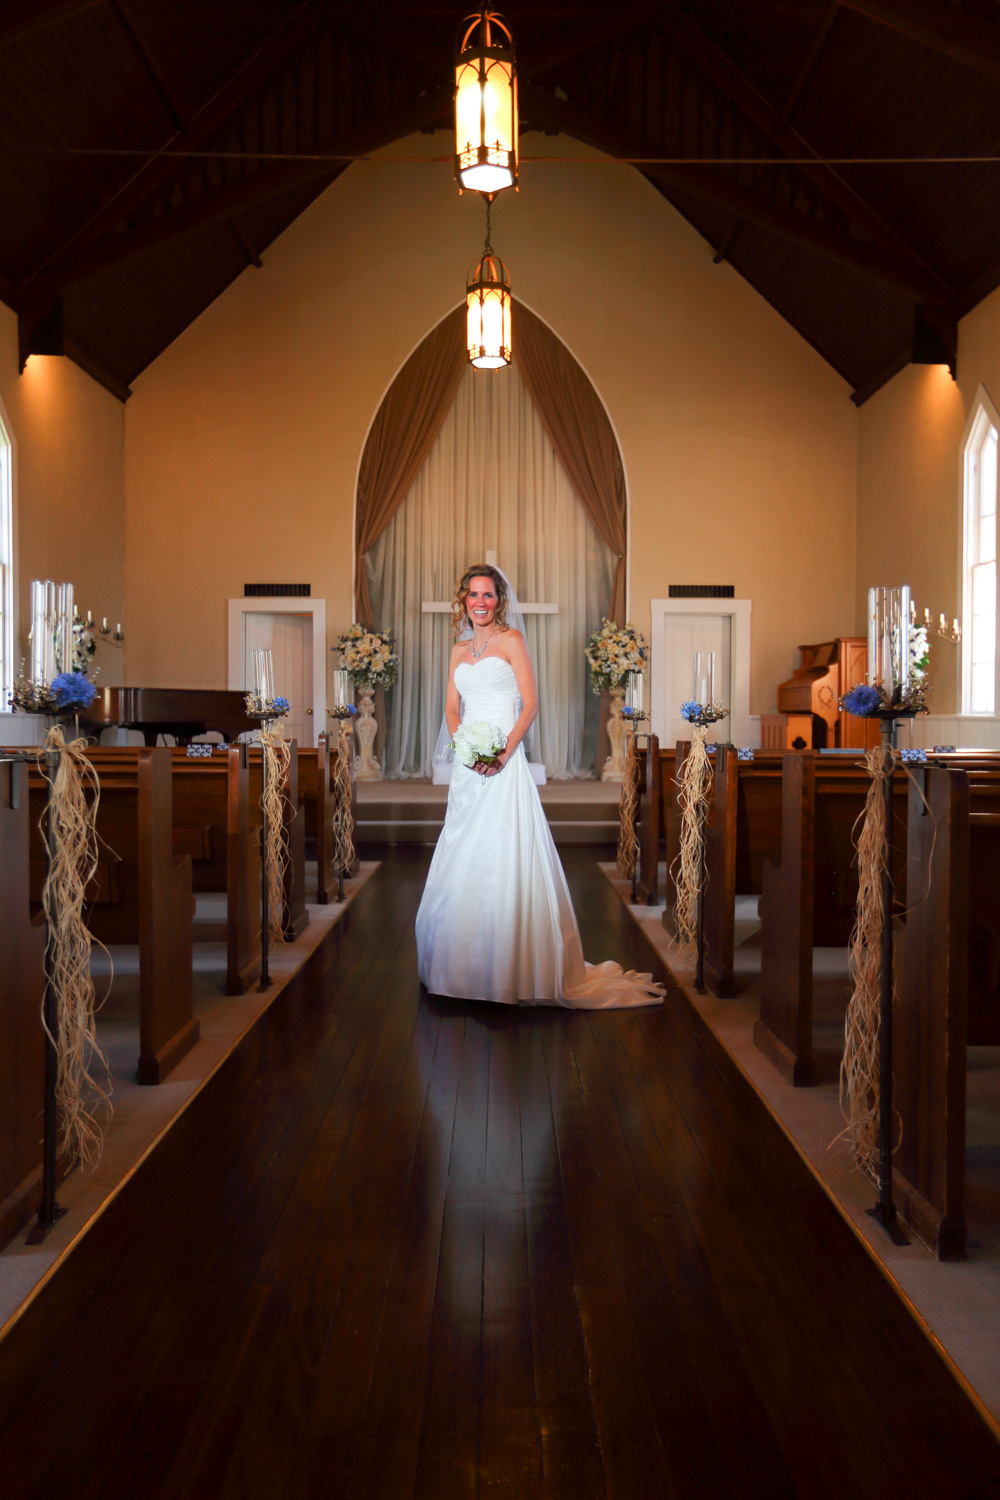 Wedding+Photos+Belle+Chapel+Snohomish+Washington09.jpg